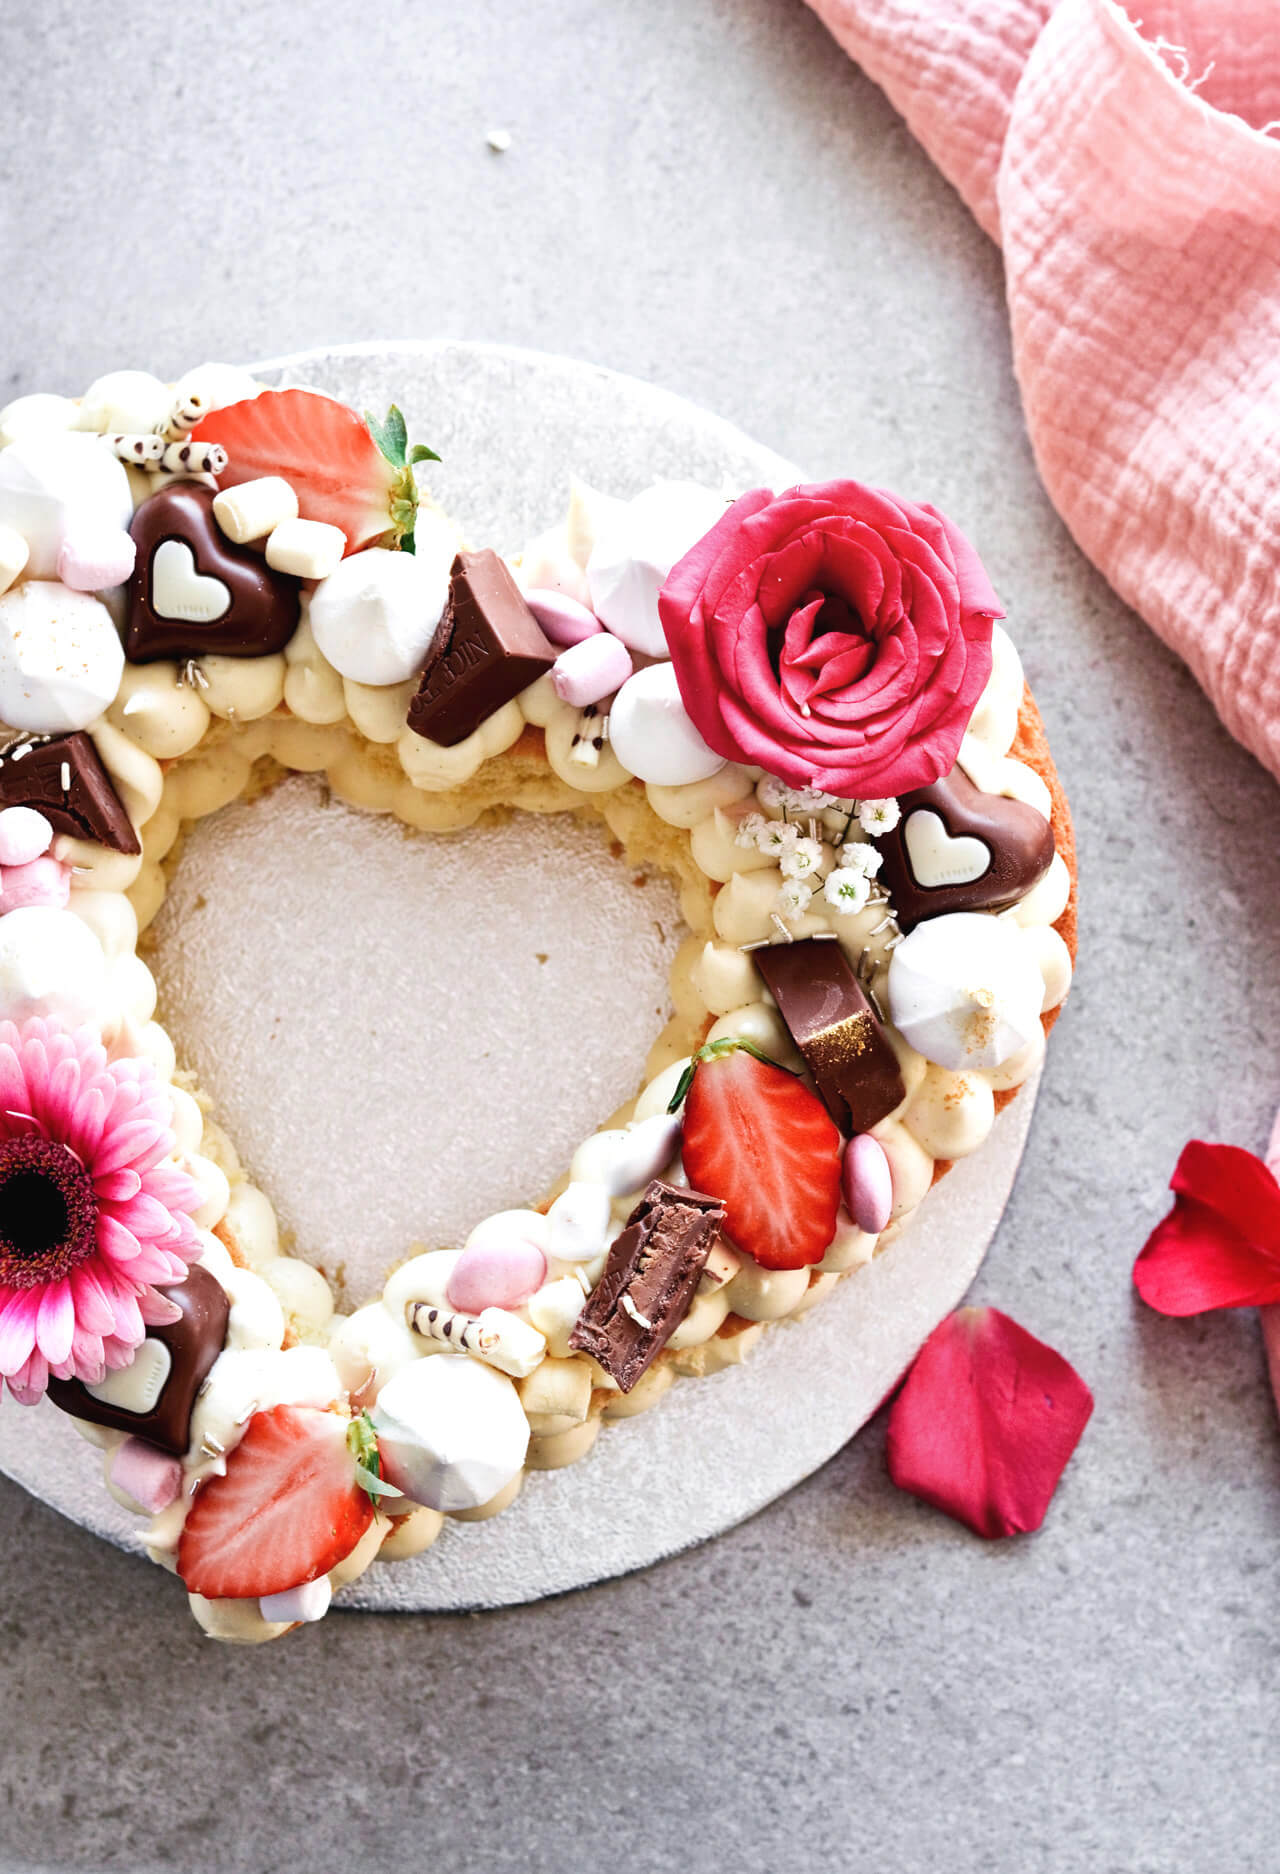 White chocolate cream cheese naked heart cake is the perfect spring or summer cake, topped with fresh berries and flowers it's eye-catching and pretty.